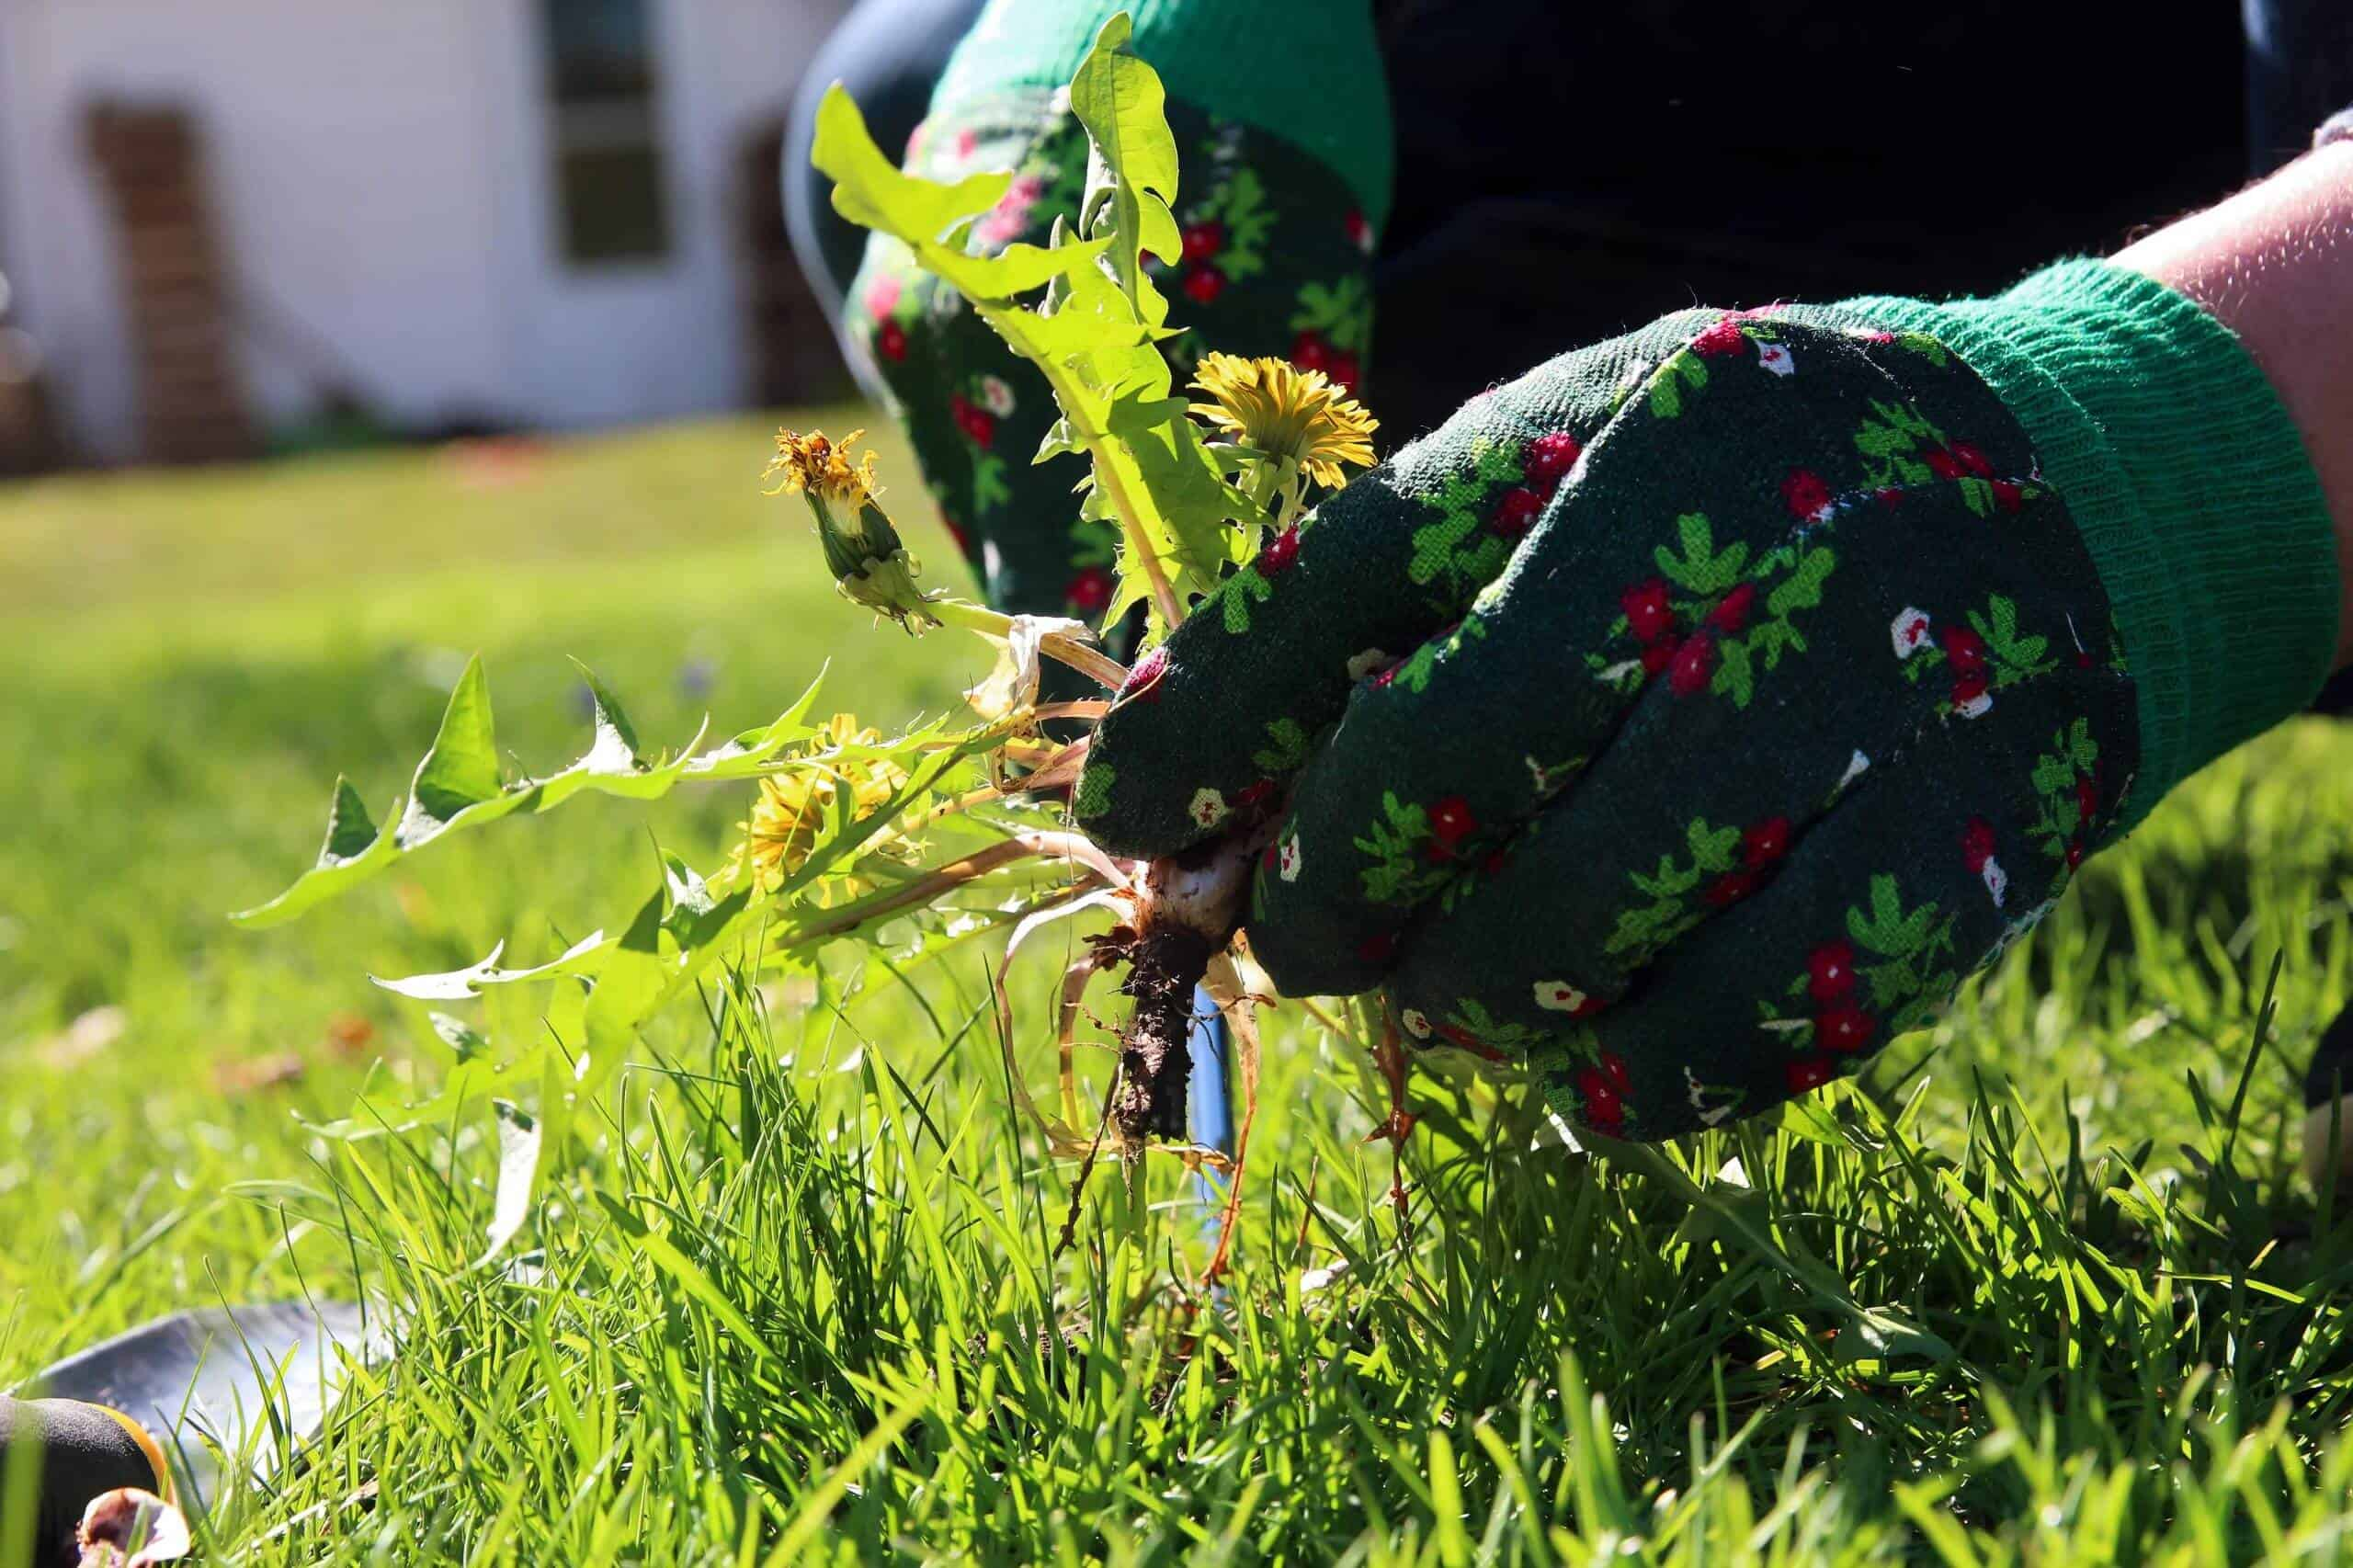 What Are the Most Suitable Weed Control Methods?